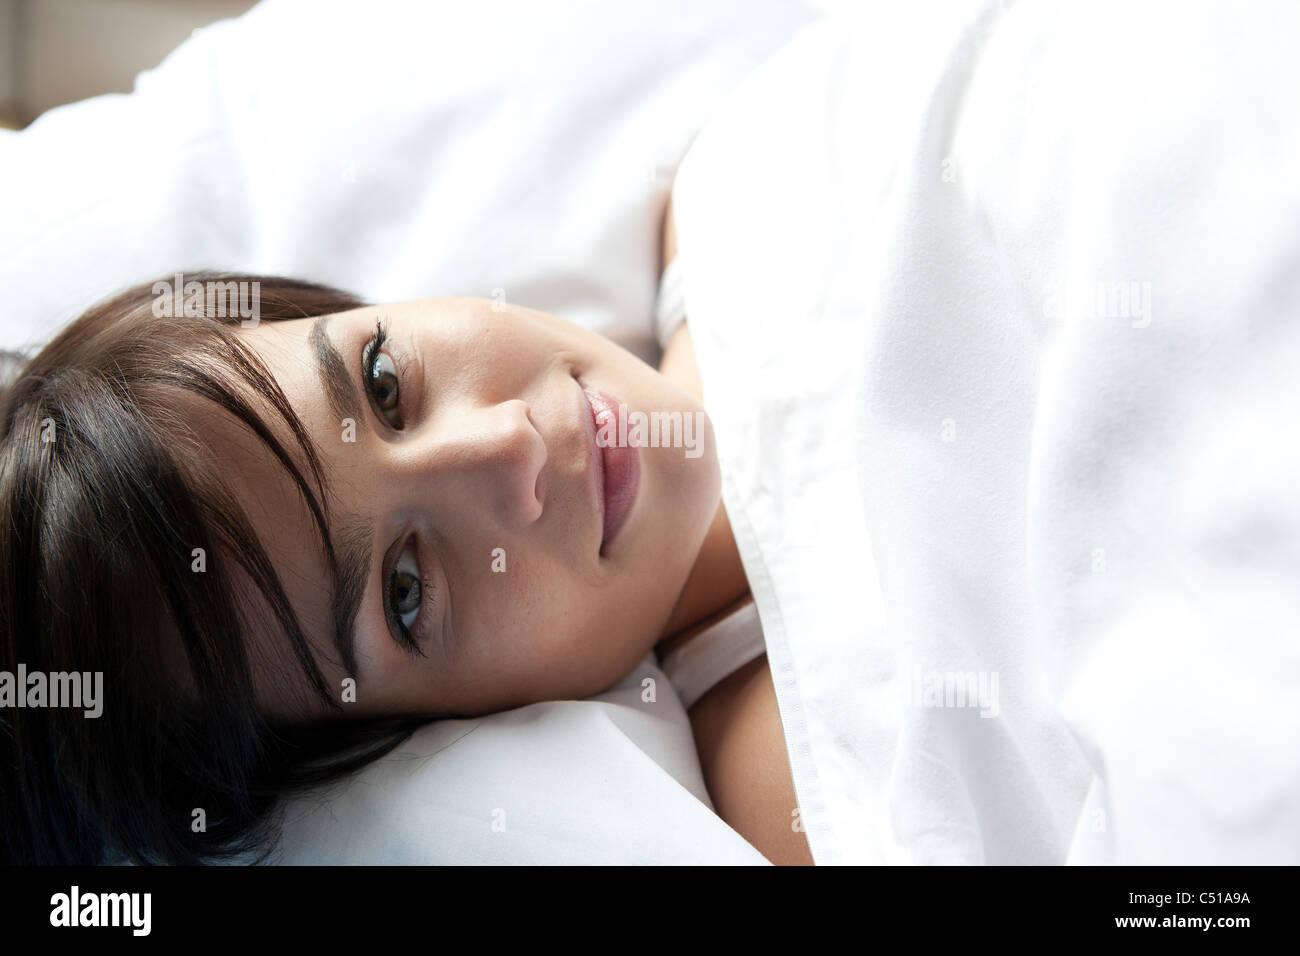 portrait of young woman lying in bed - Stock Image